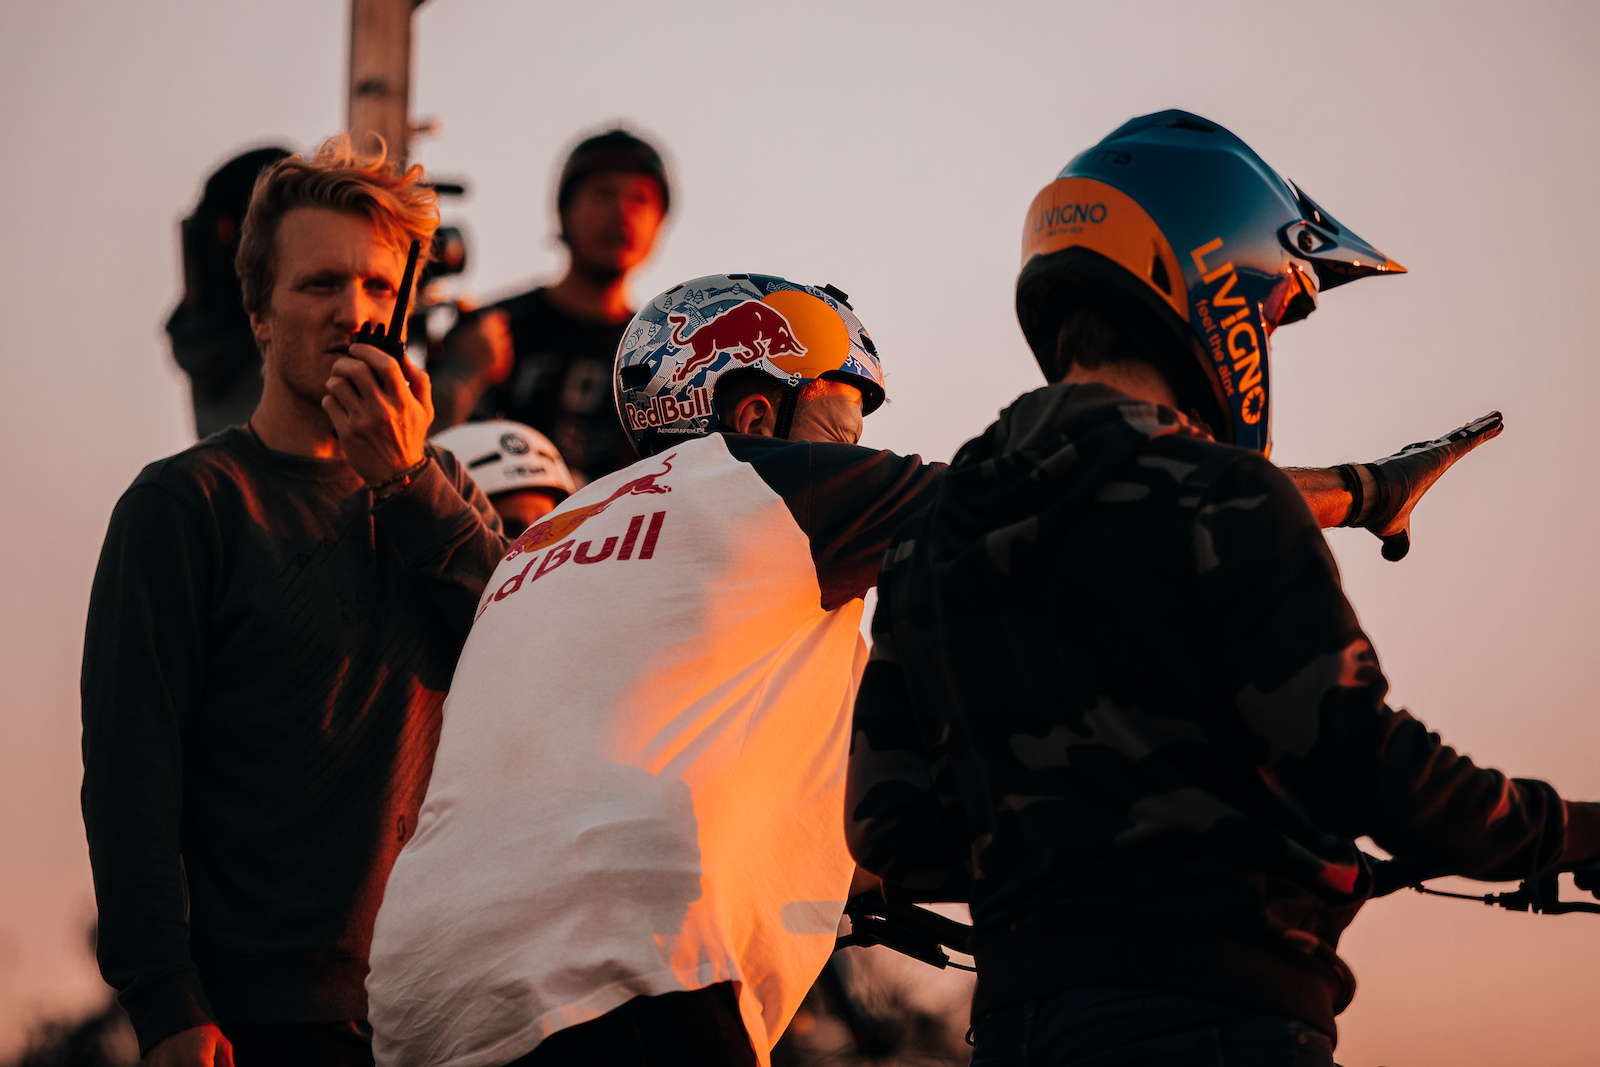 Director Andi Tillmann getting the gang ready to drop in in one of countless golden hour sessions.